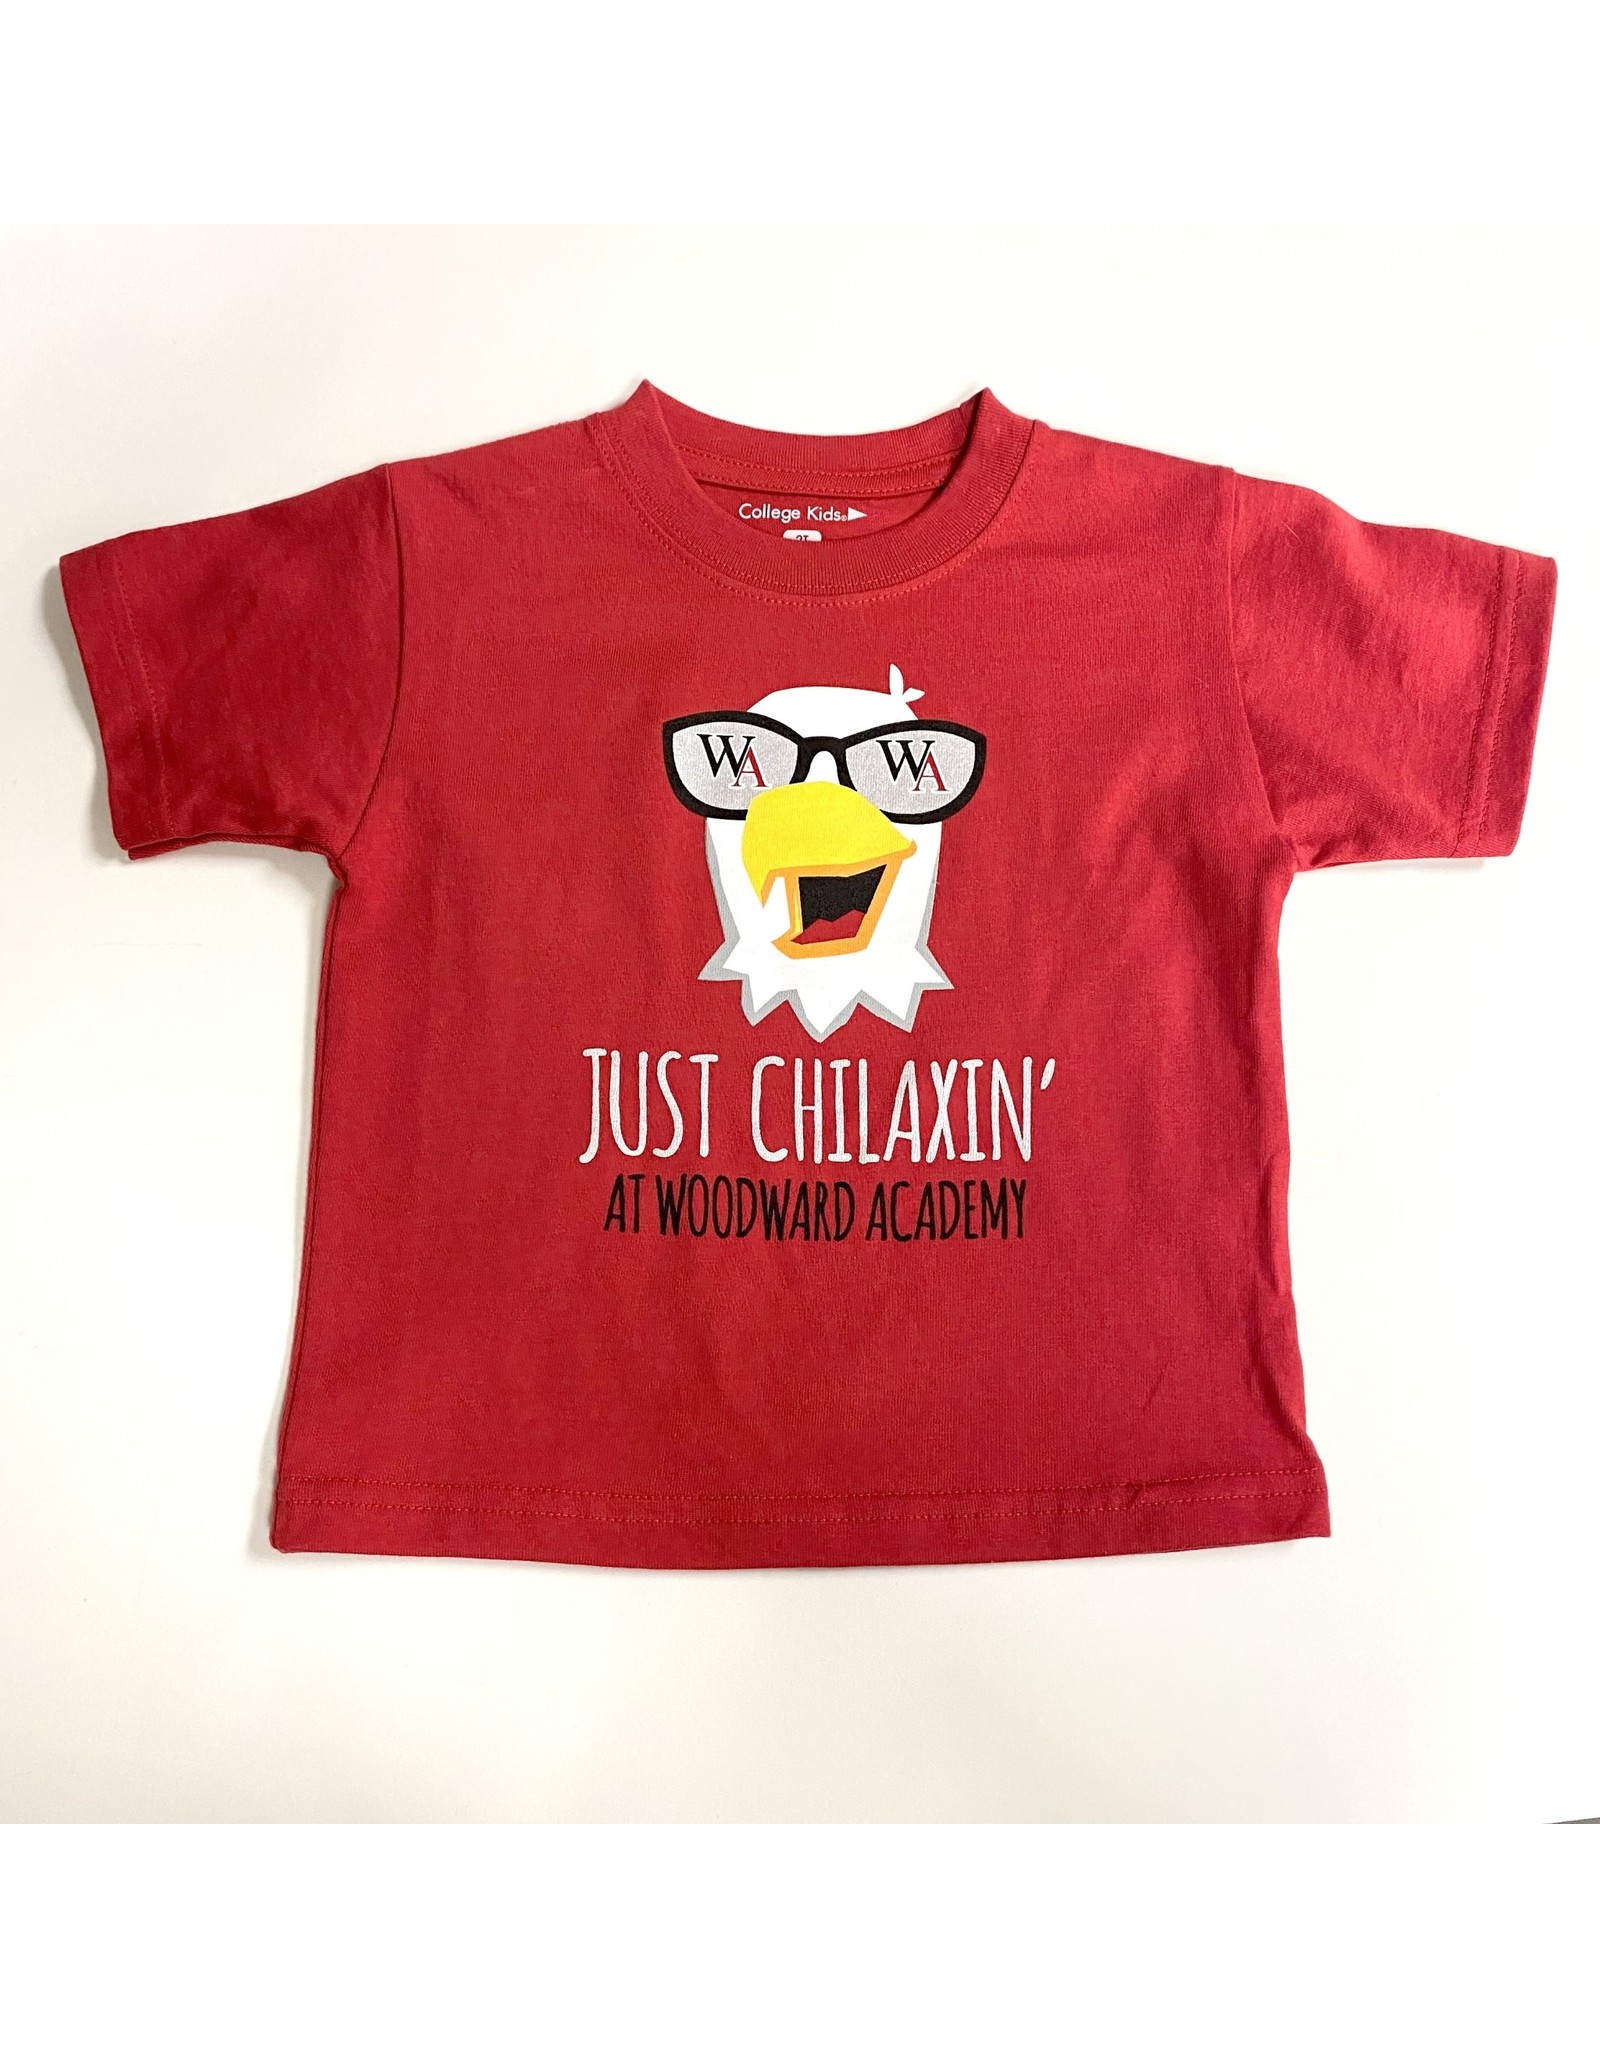 College Kids 'Chilaxin' Eagle Toddler T Shirt